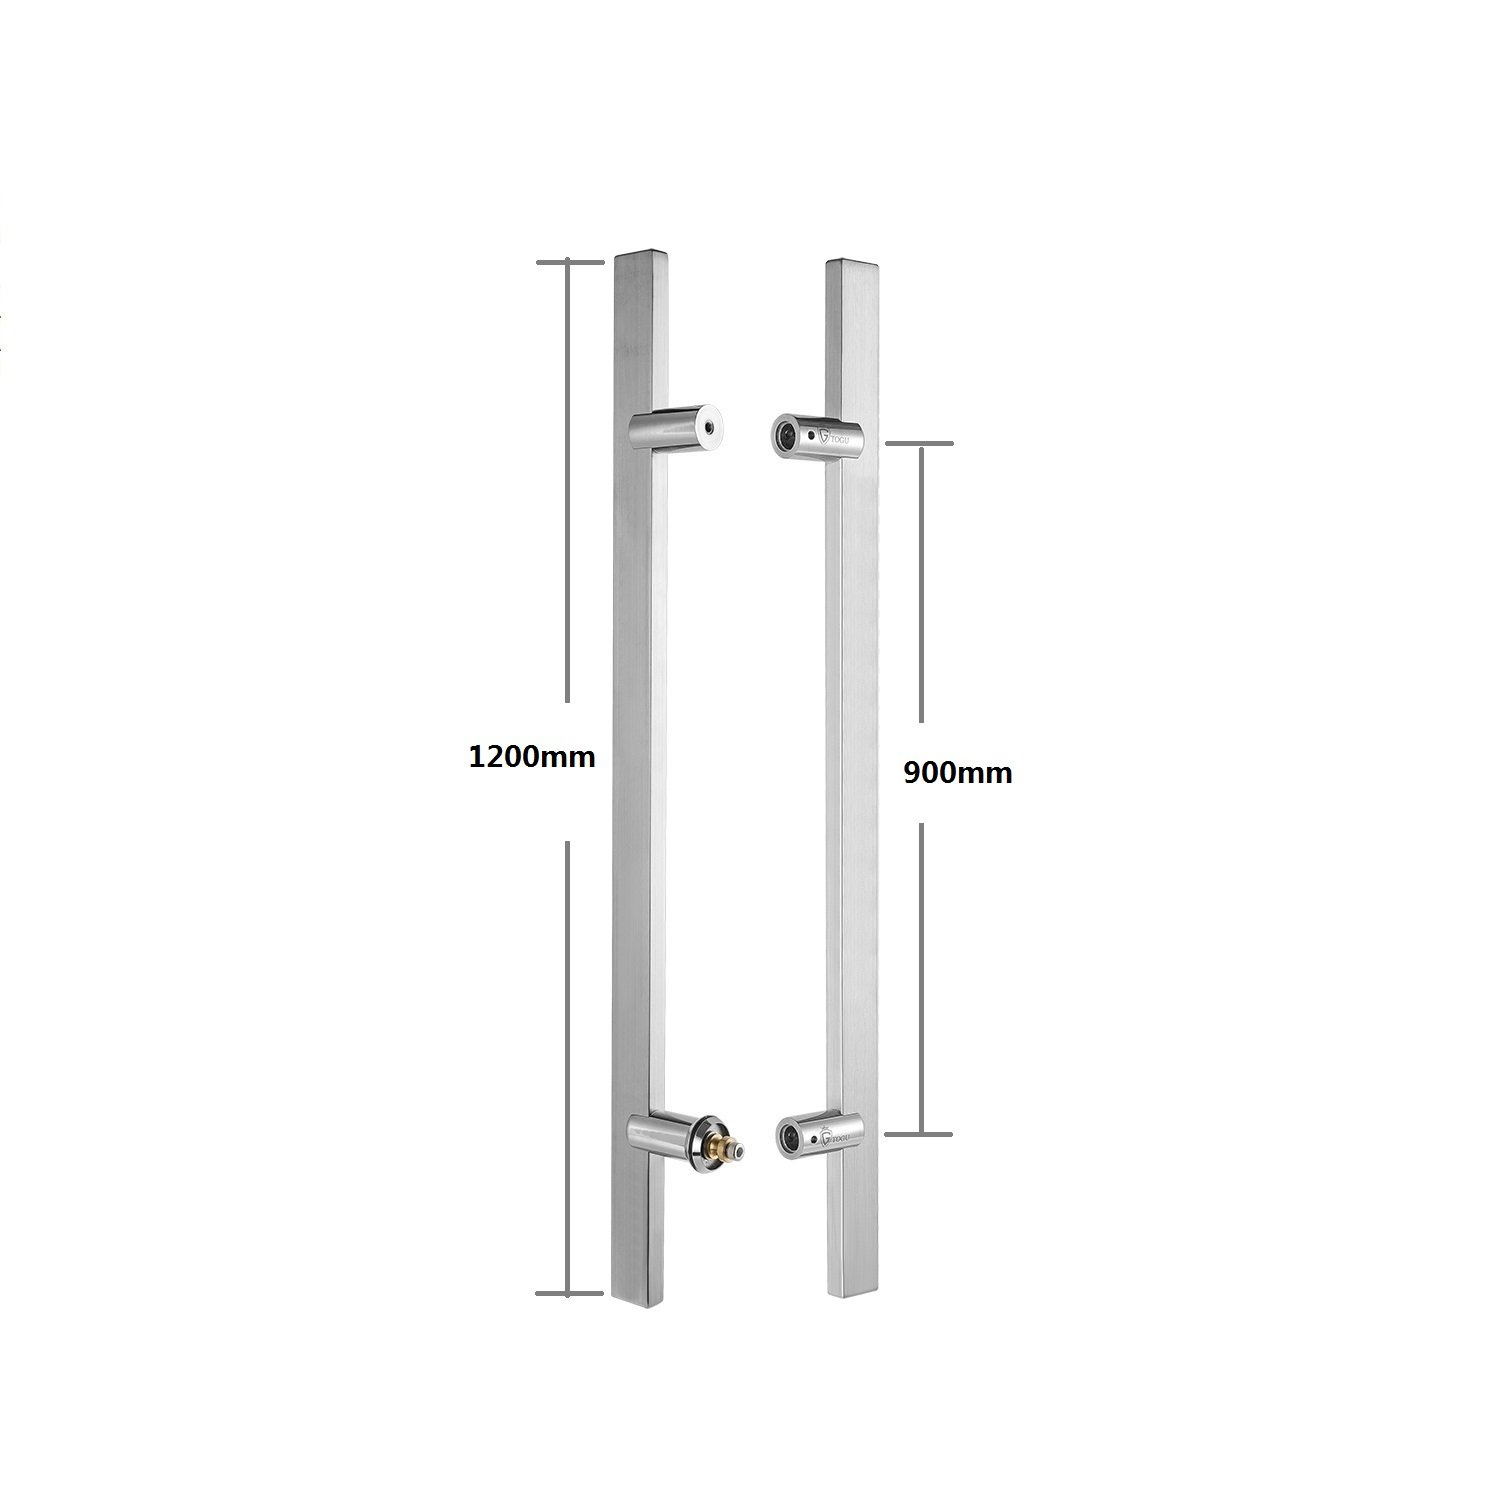 Glass and Steel Doors Timber Matt Black Finish TOGU TG-6017 900mm//36 inches Square//Rectangle H-Shape//Ladder Style Back to Back Stainless Steel Push Pull Door Handle for Solid Wood